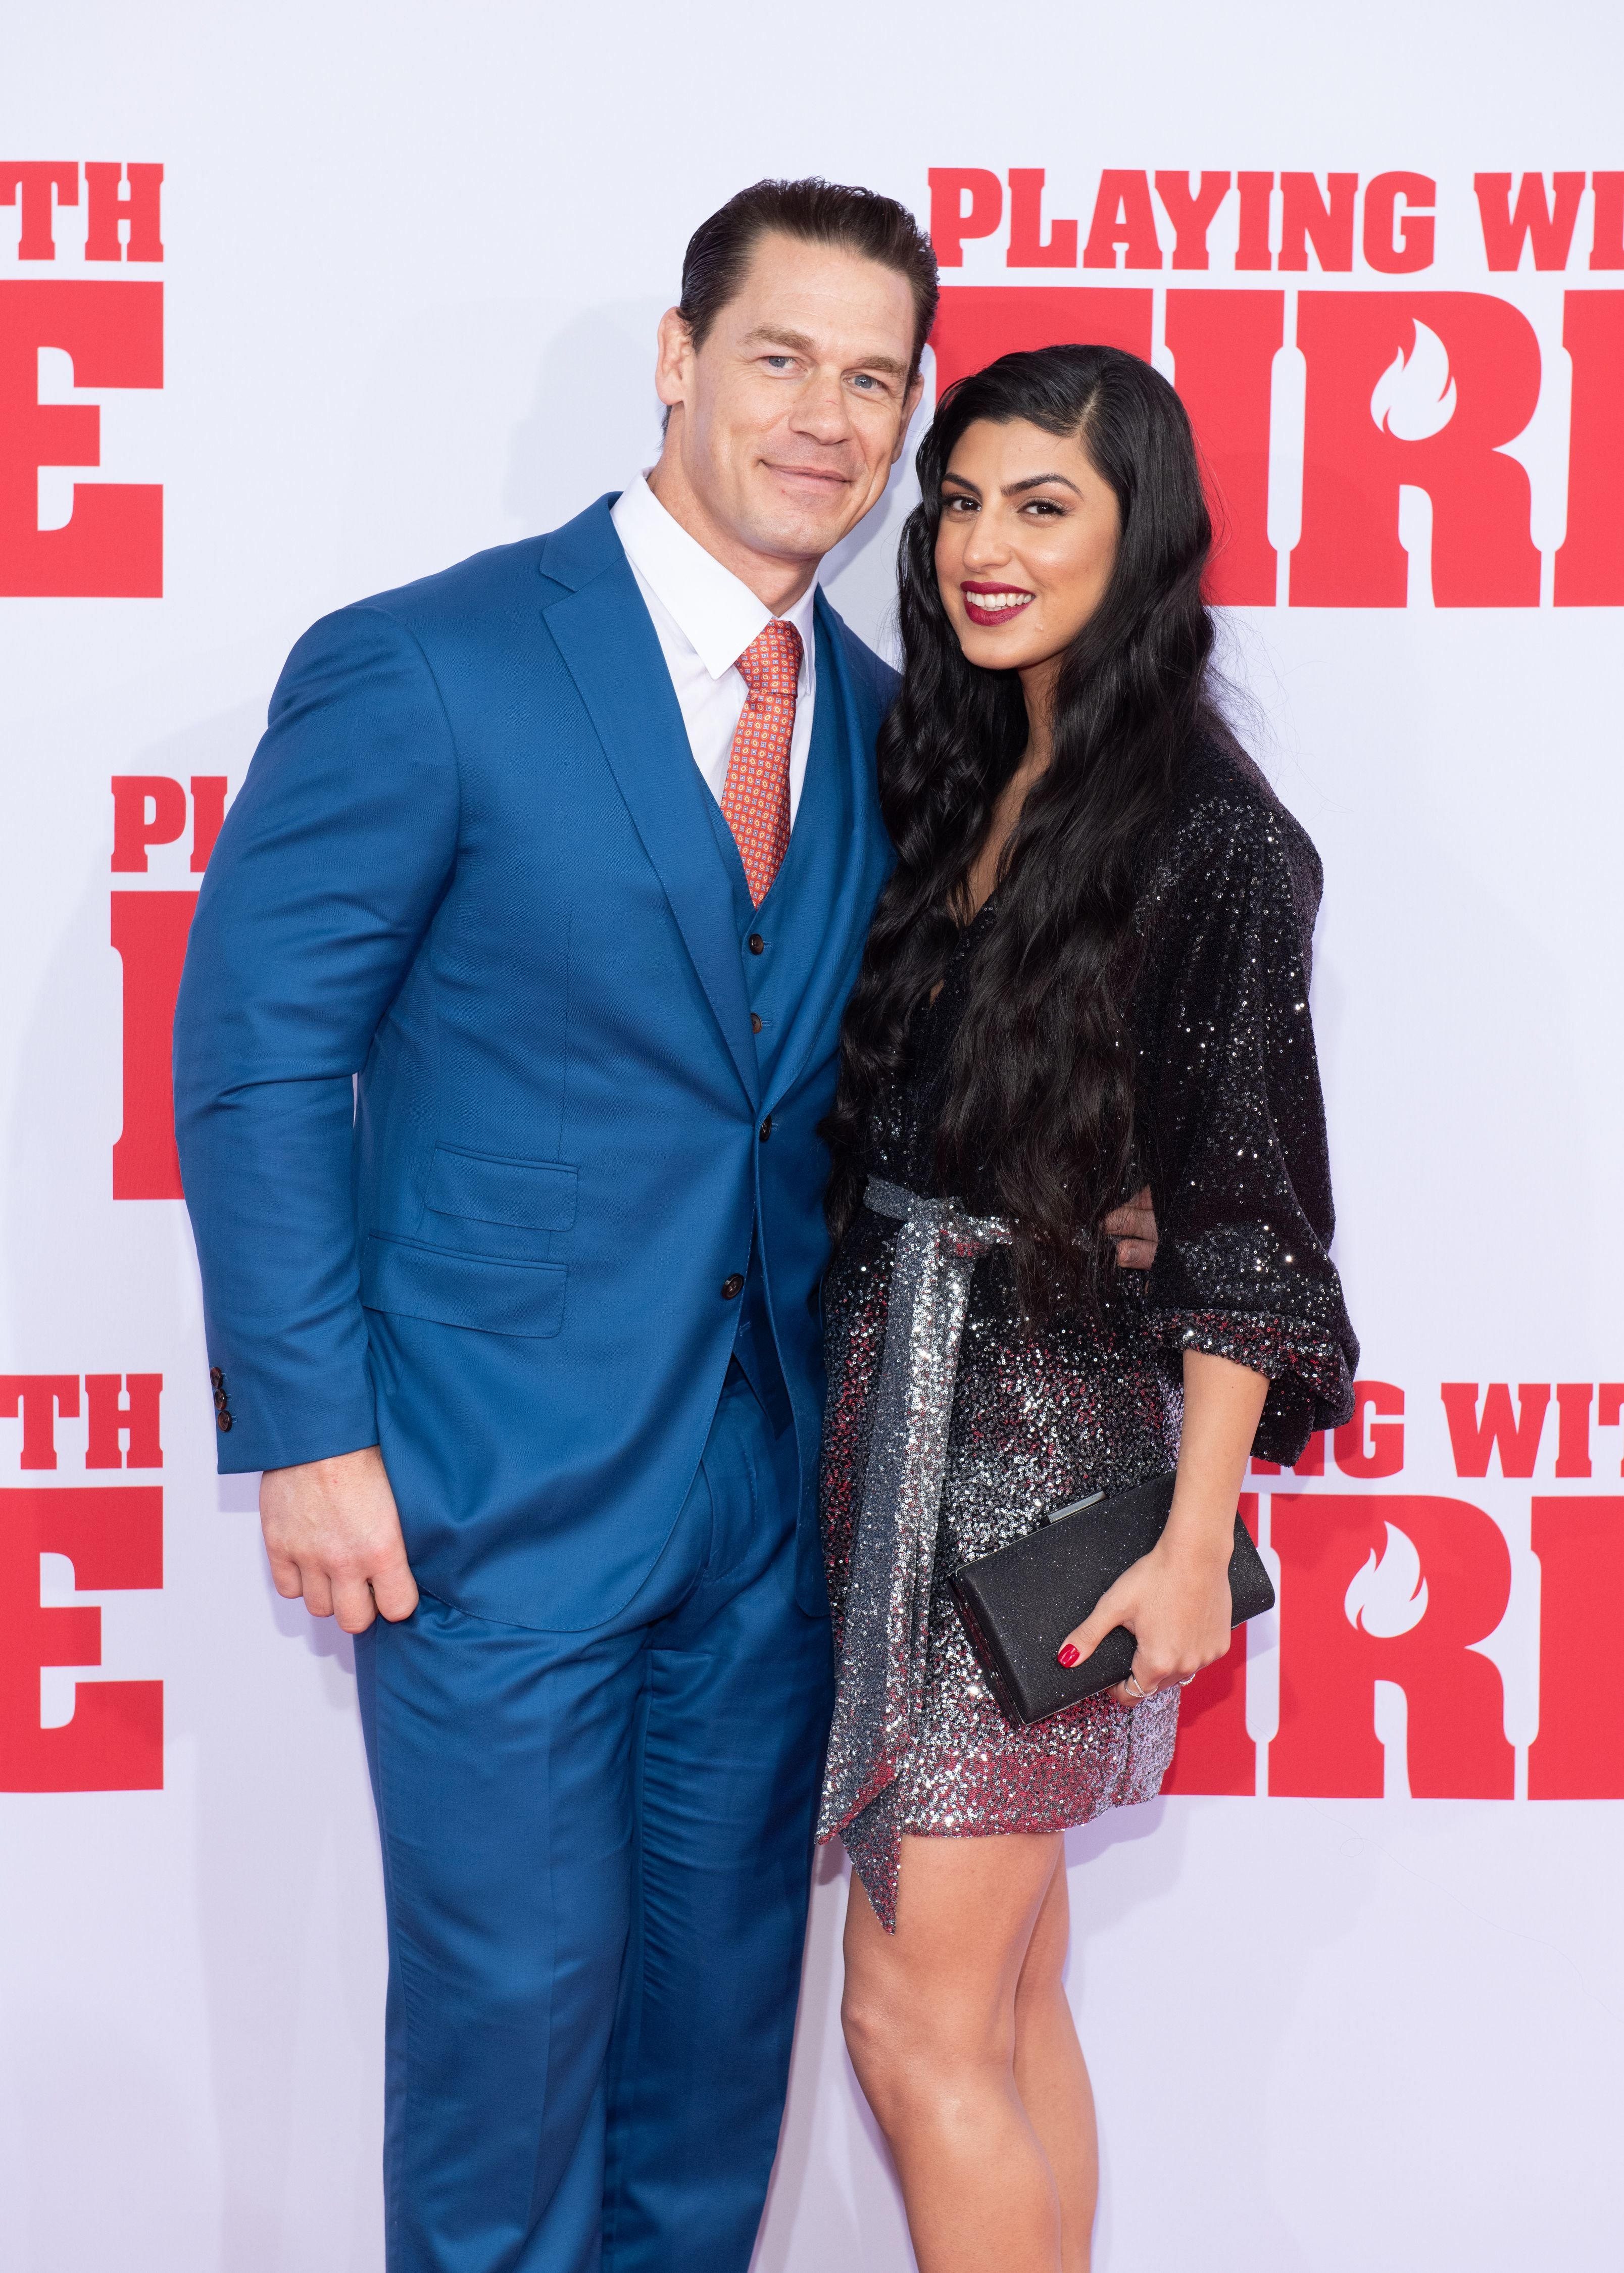 """John Cena and Shay Shariatzadeh atthe """"Playing With Fire"""" New York premiere at AMC Lincoln Square Theater on October 26, 2019 